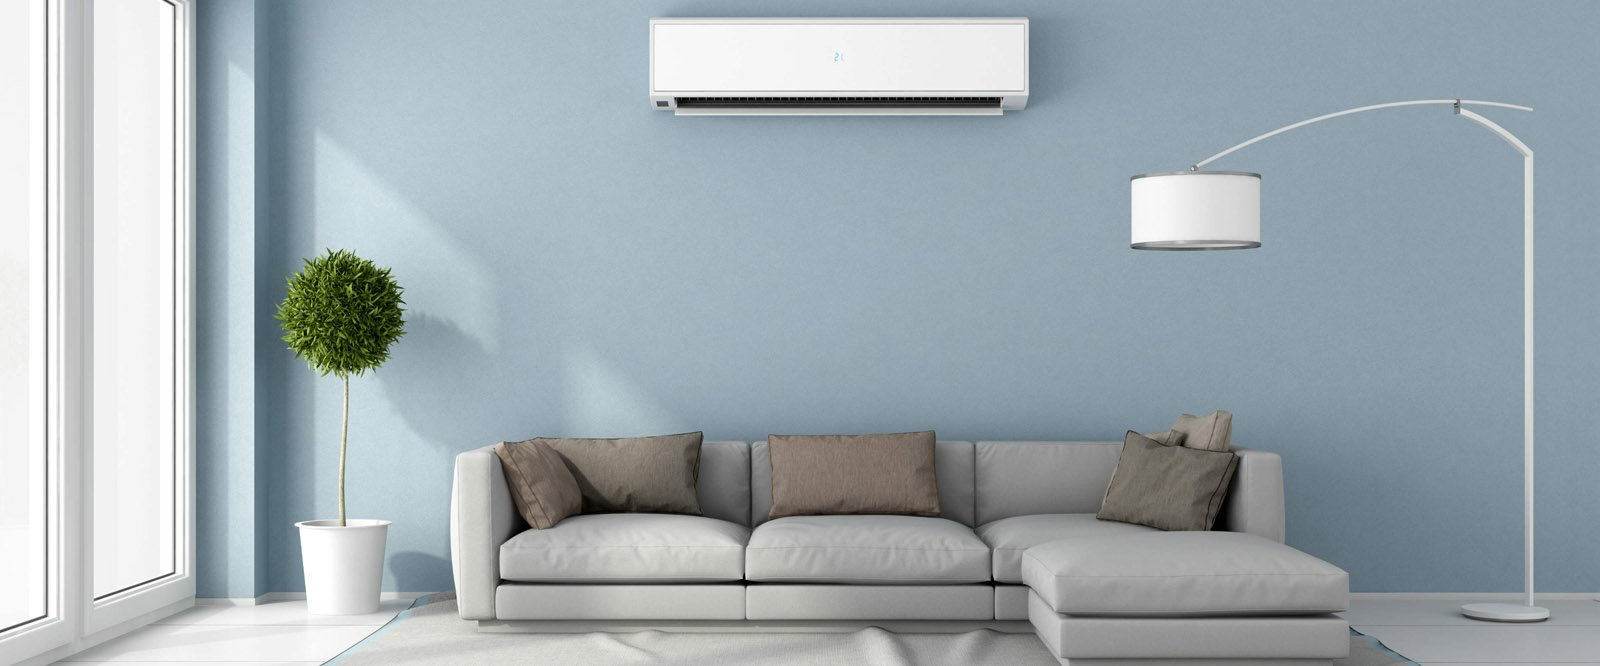 home air conditioning 5